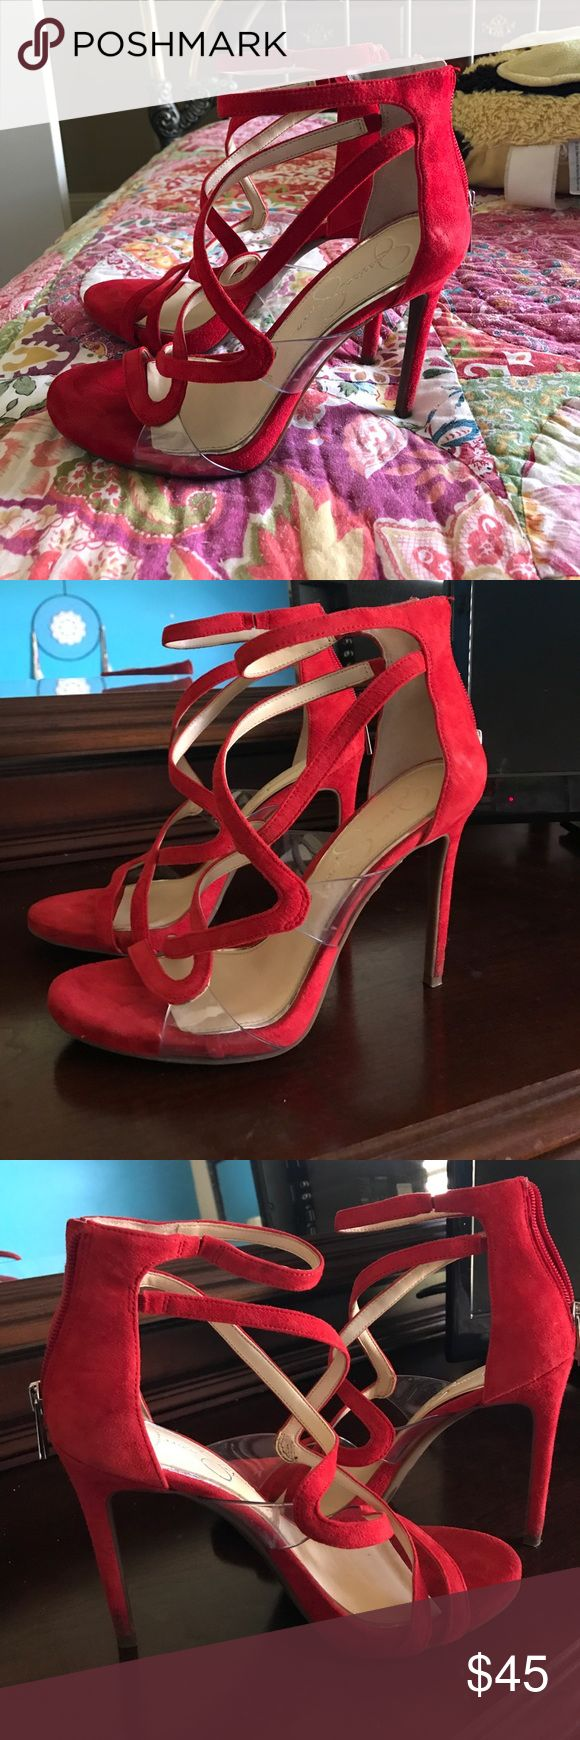 Jessica Simpson Red Heels Jessica Simpson, Red felt material heels! Only worn to one event and in perfect condition! Jessica Simpson Shoes Heels